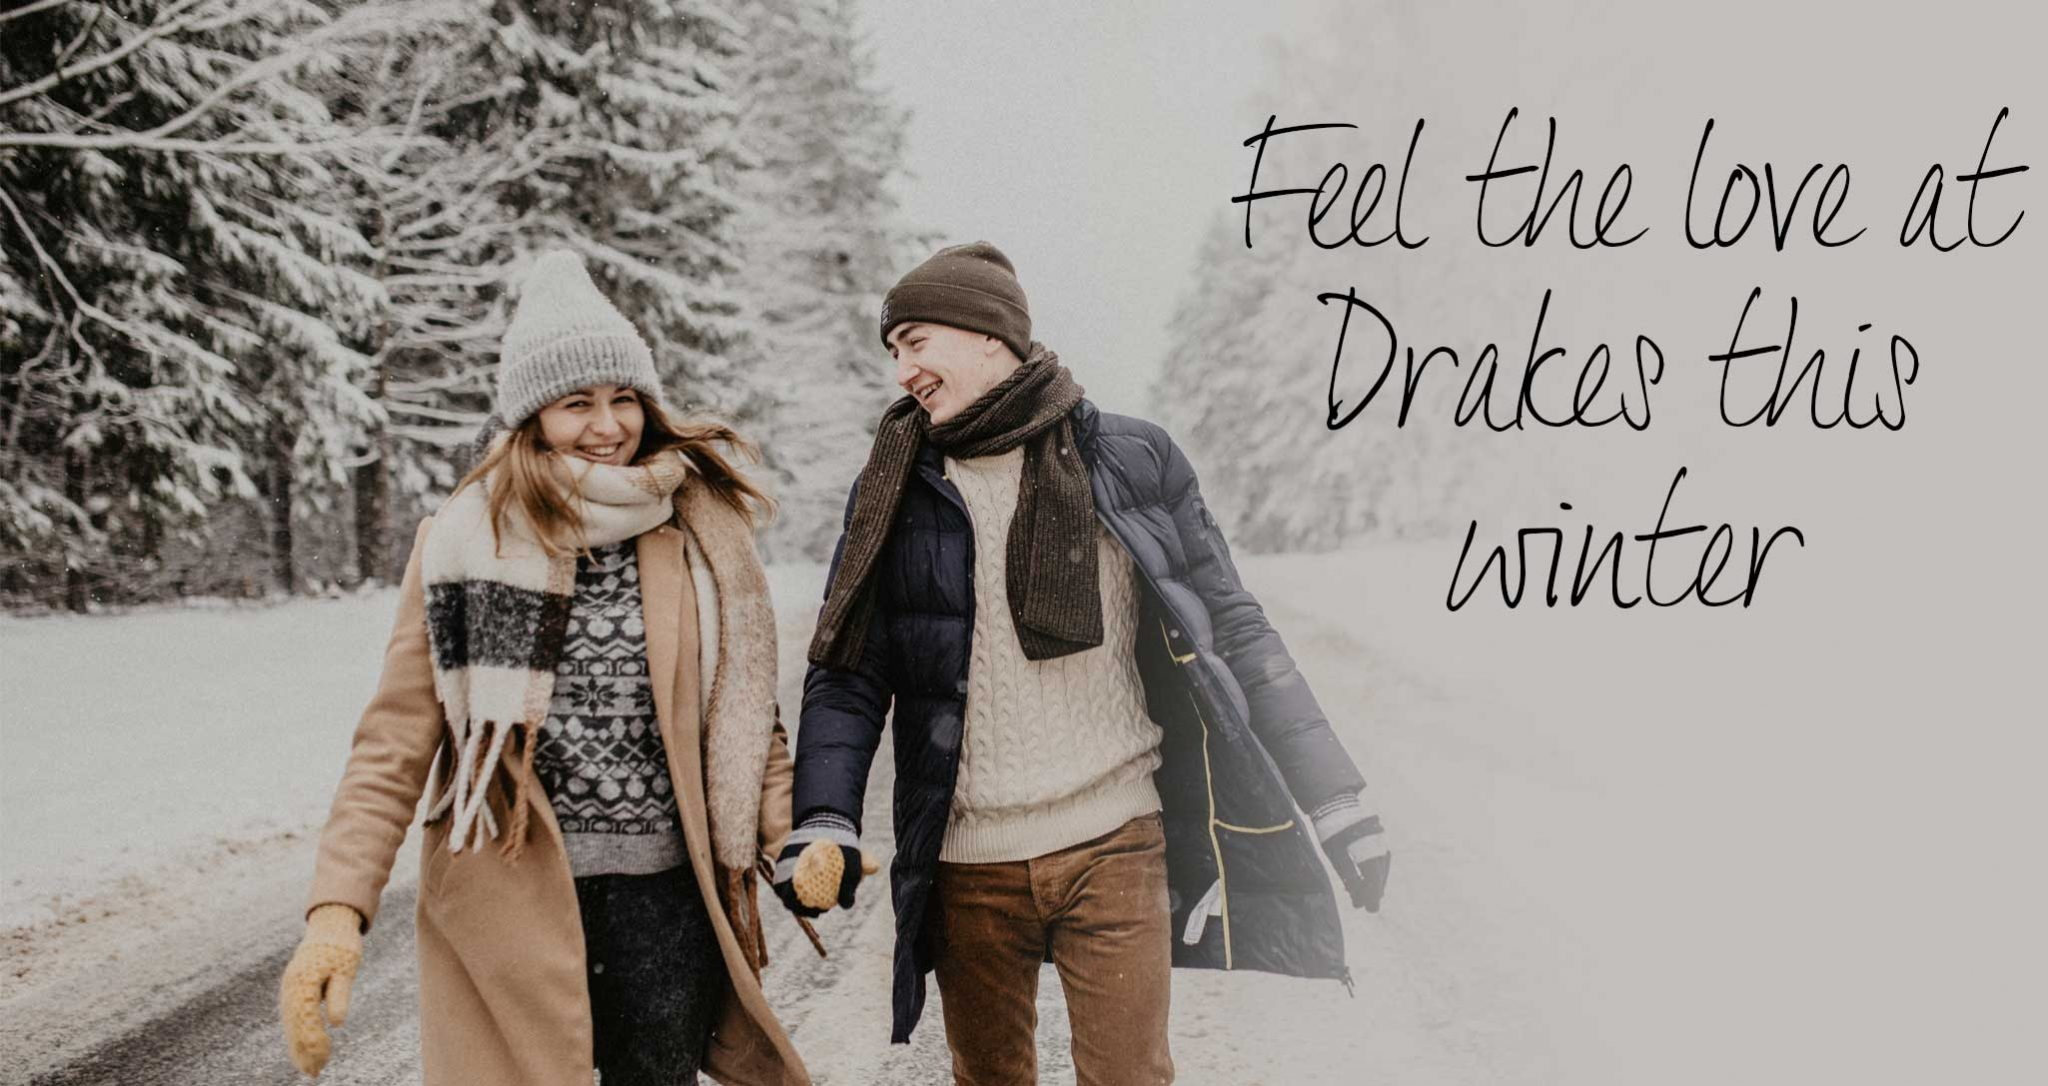 Drakes Jewellers, Feel the love at Drakes this Winter